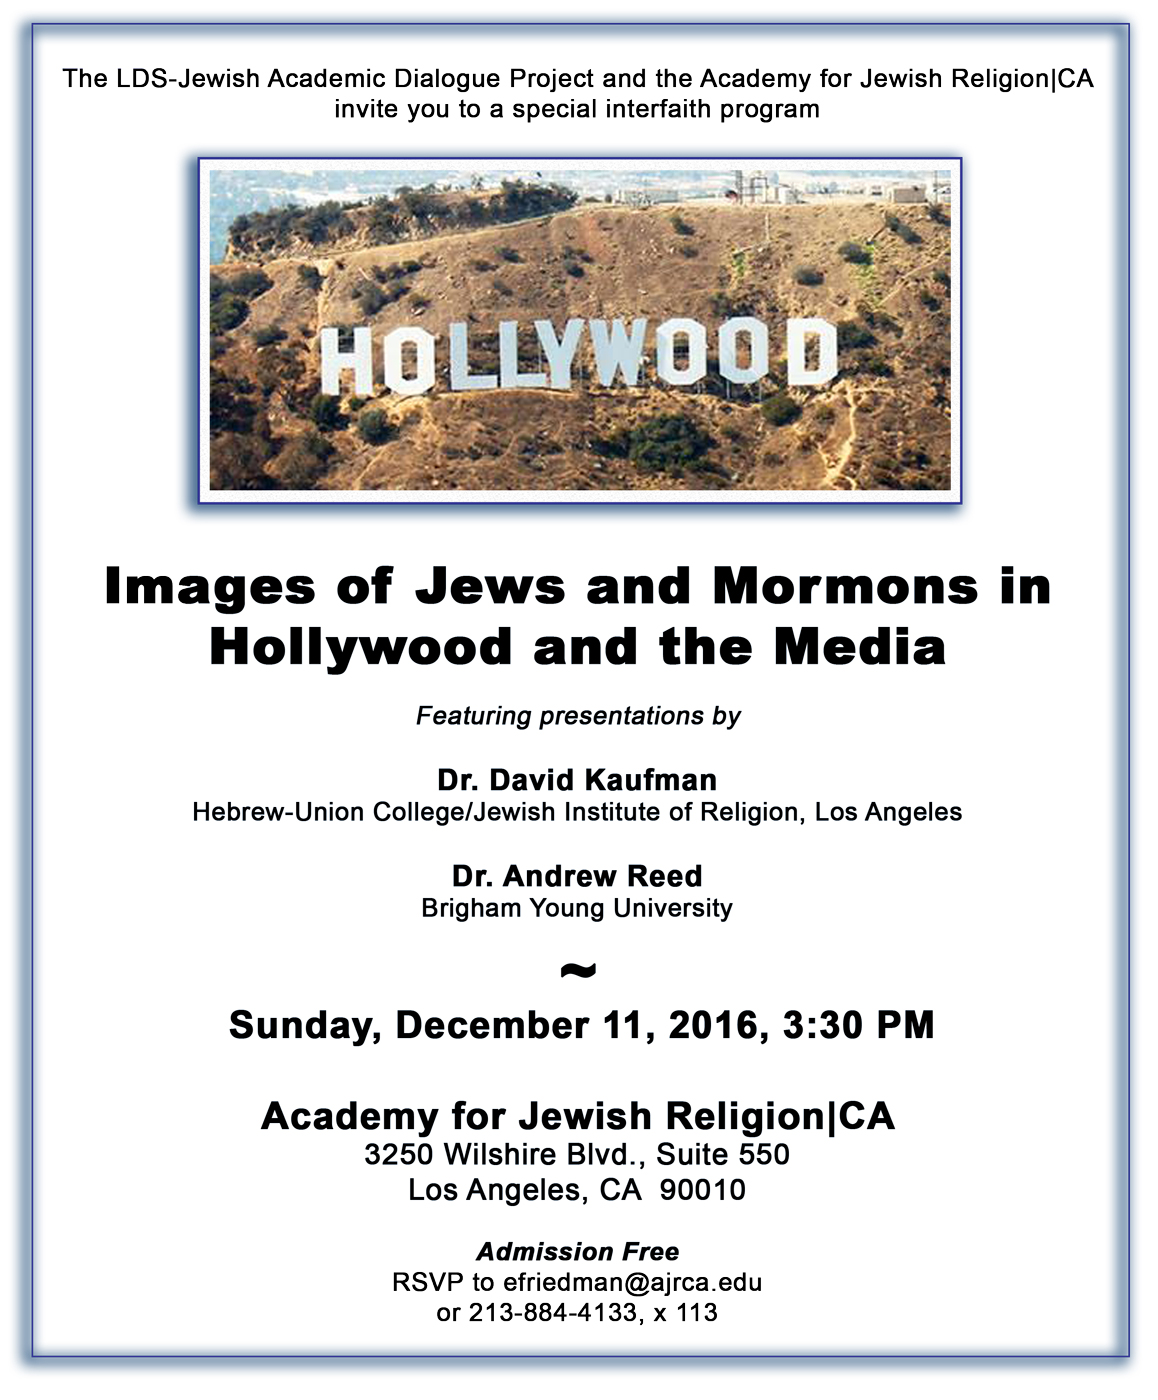 Images of Jews and Mormons in Hollywood and the Media